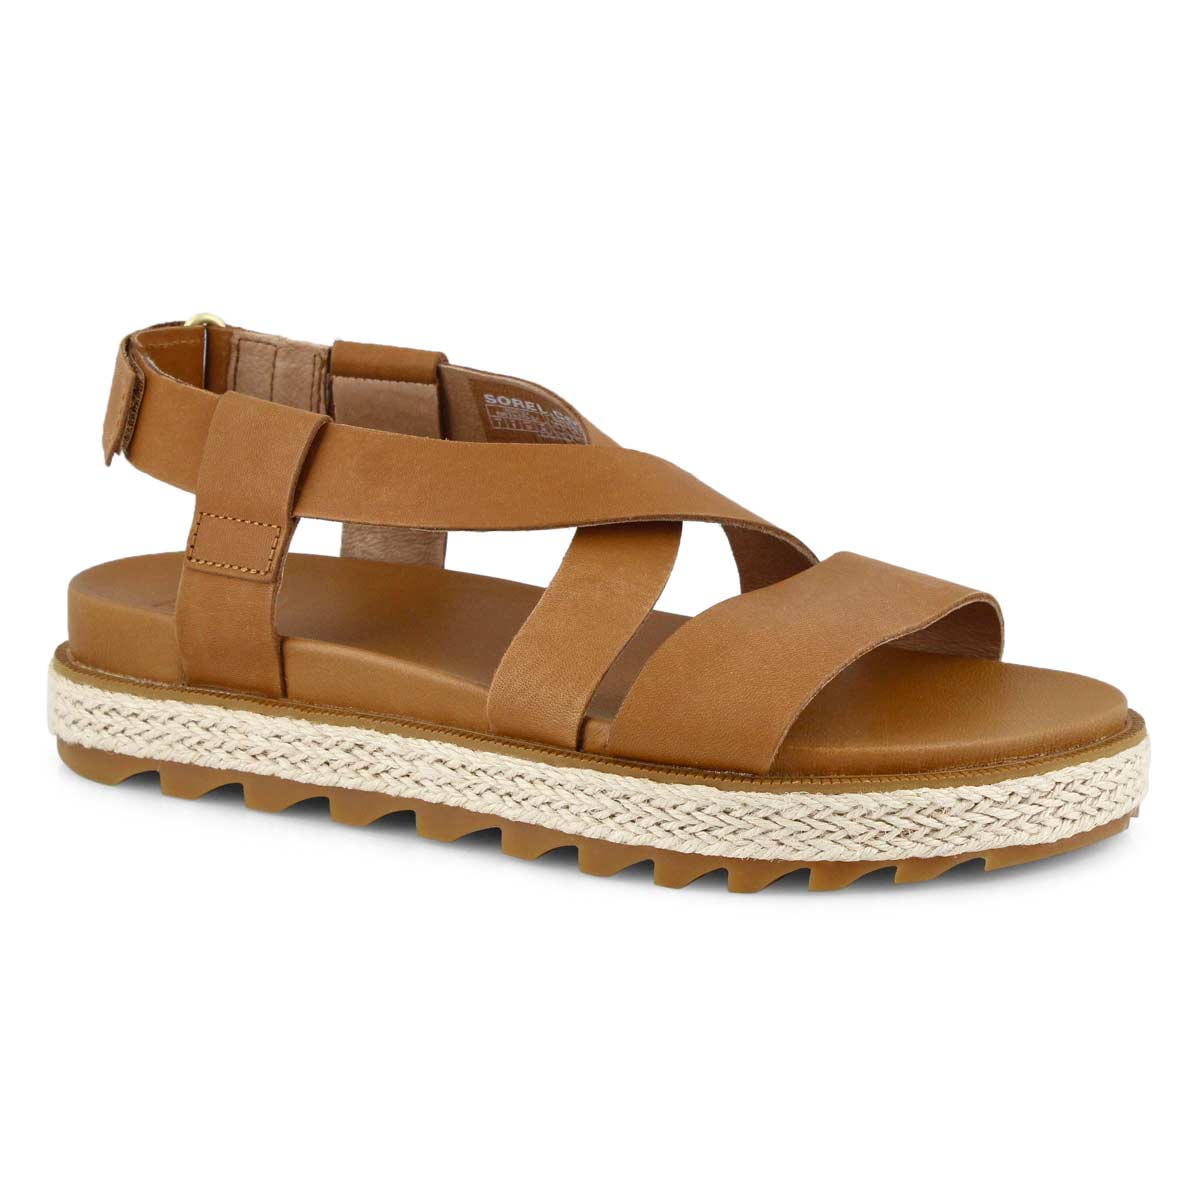 Sandales ROAMING CRISS-CROSS JUTE, femmes